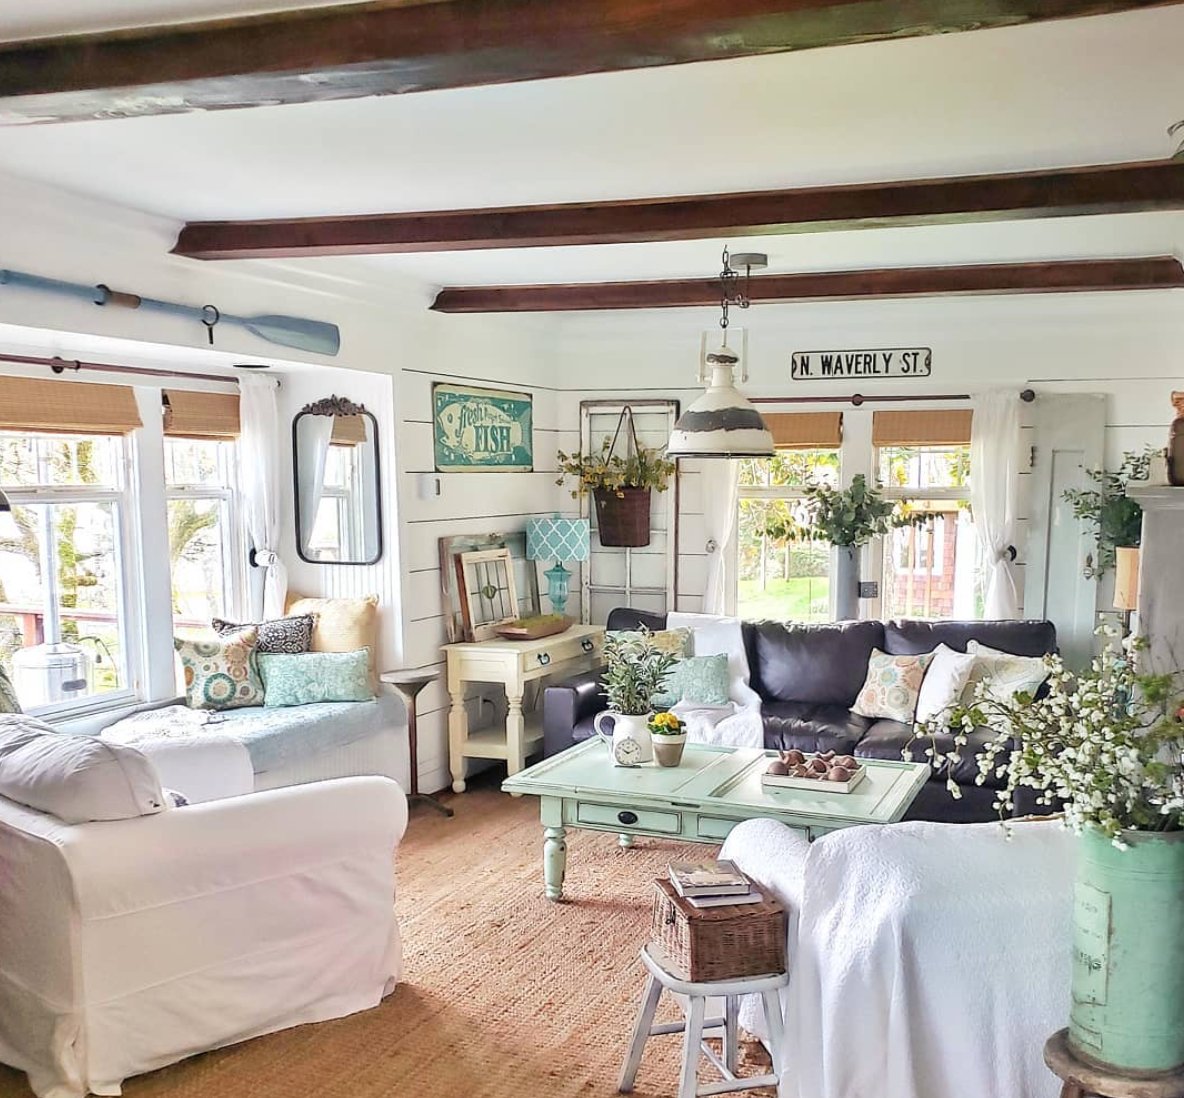 The remodeled living room of Robinson's home is pure beach cottage chic. (Photo: Kim Robinson/Shiplap and Shells)<p></p>